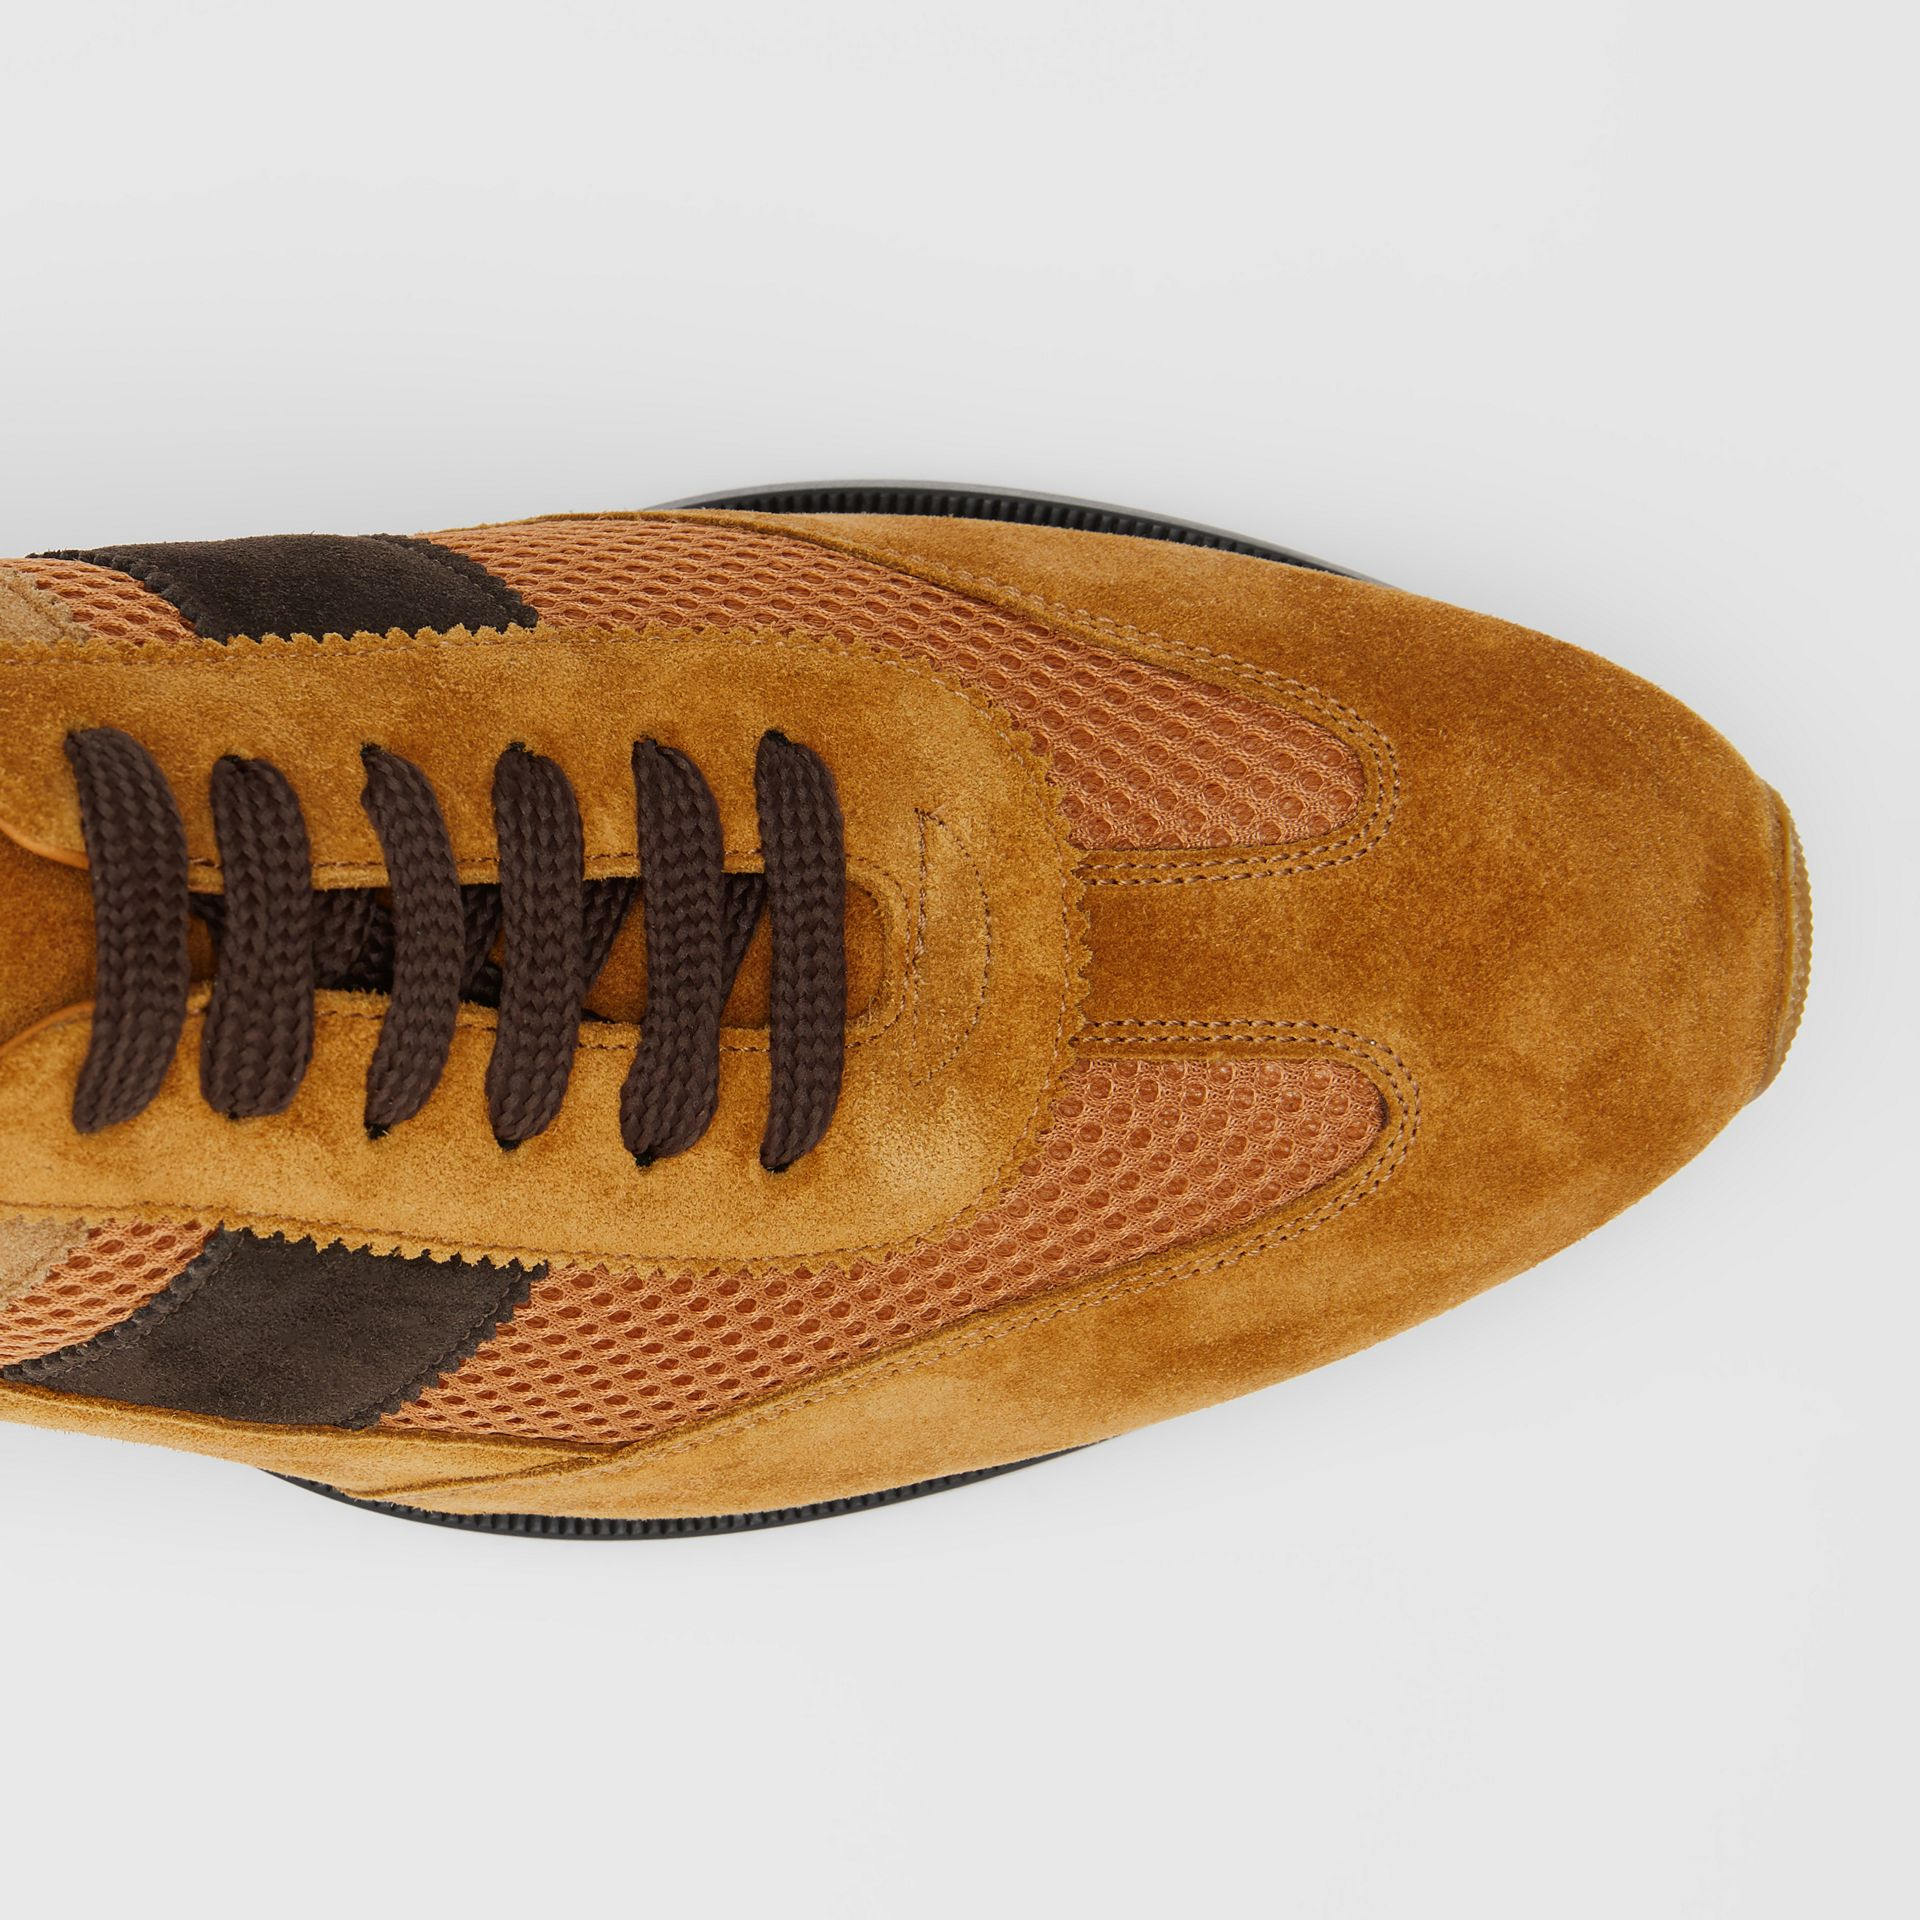 Mesh Panel Suede Lace-up Shoes in Mix Tan - Men | Burberry - gallery image 1